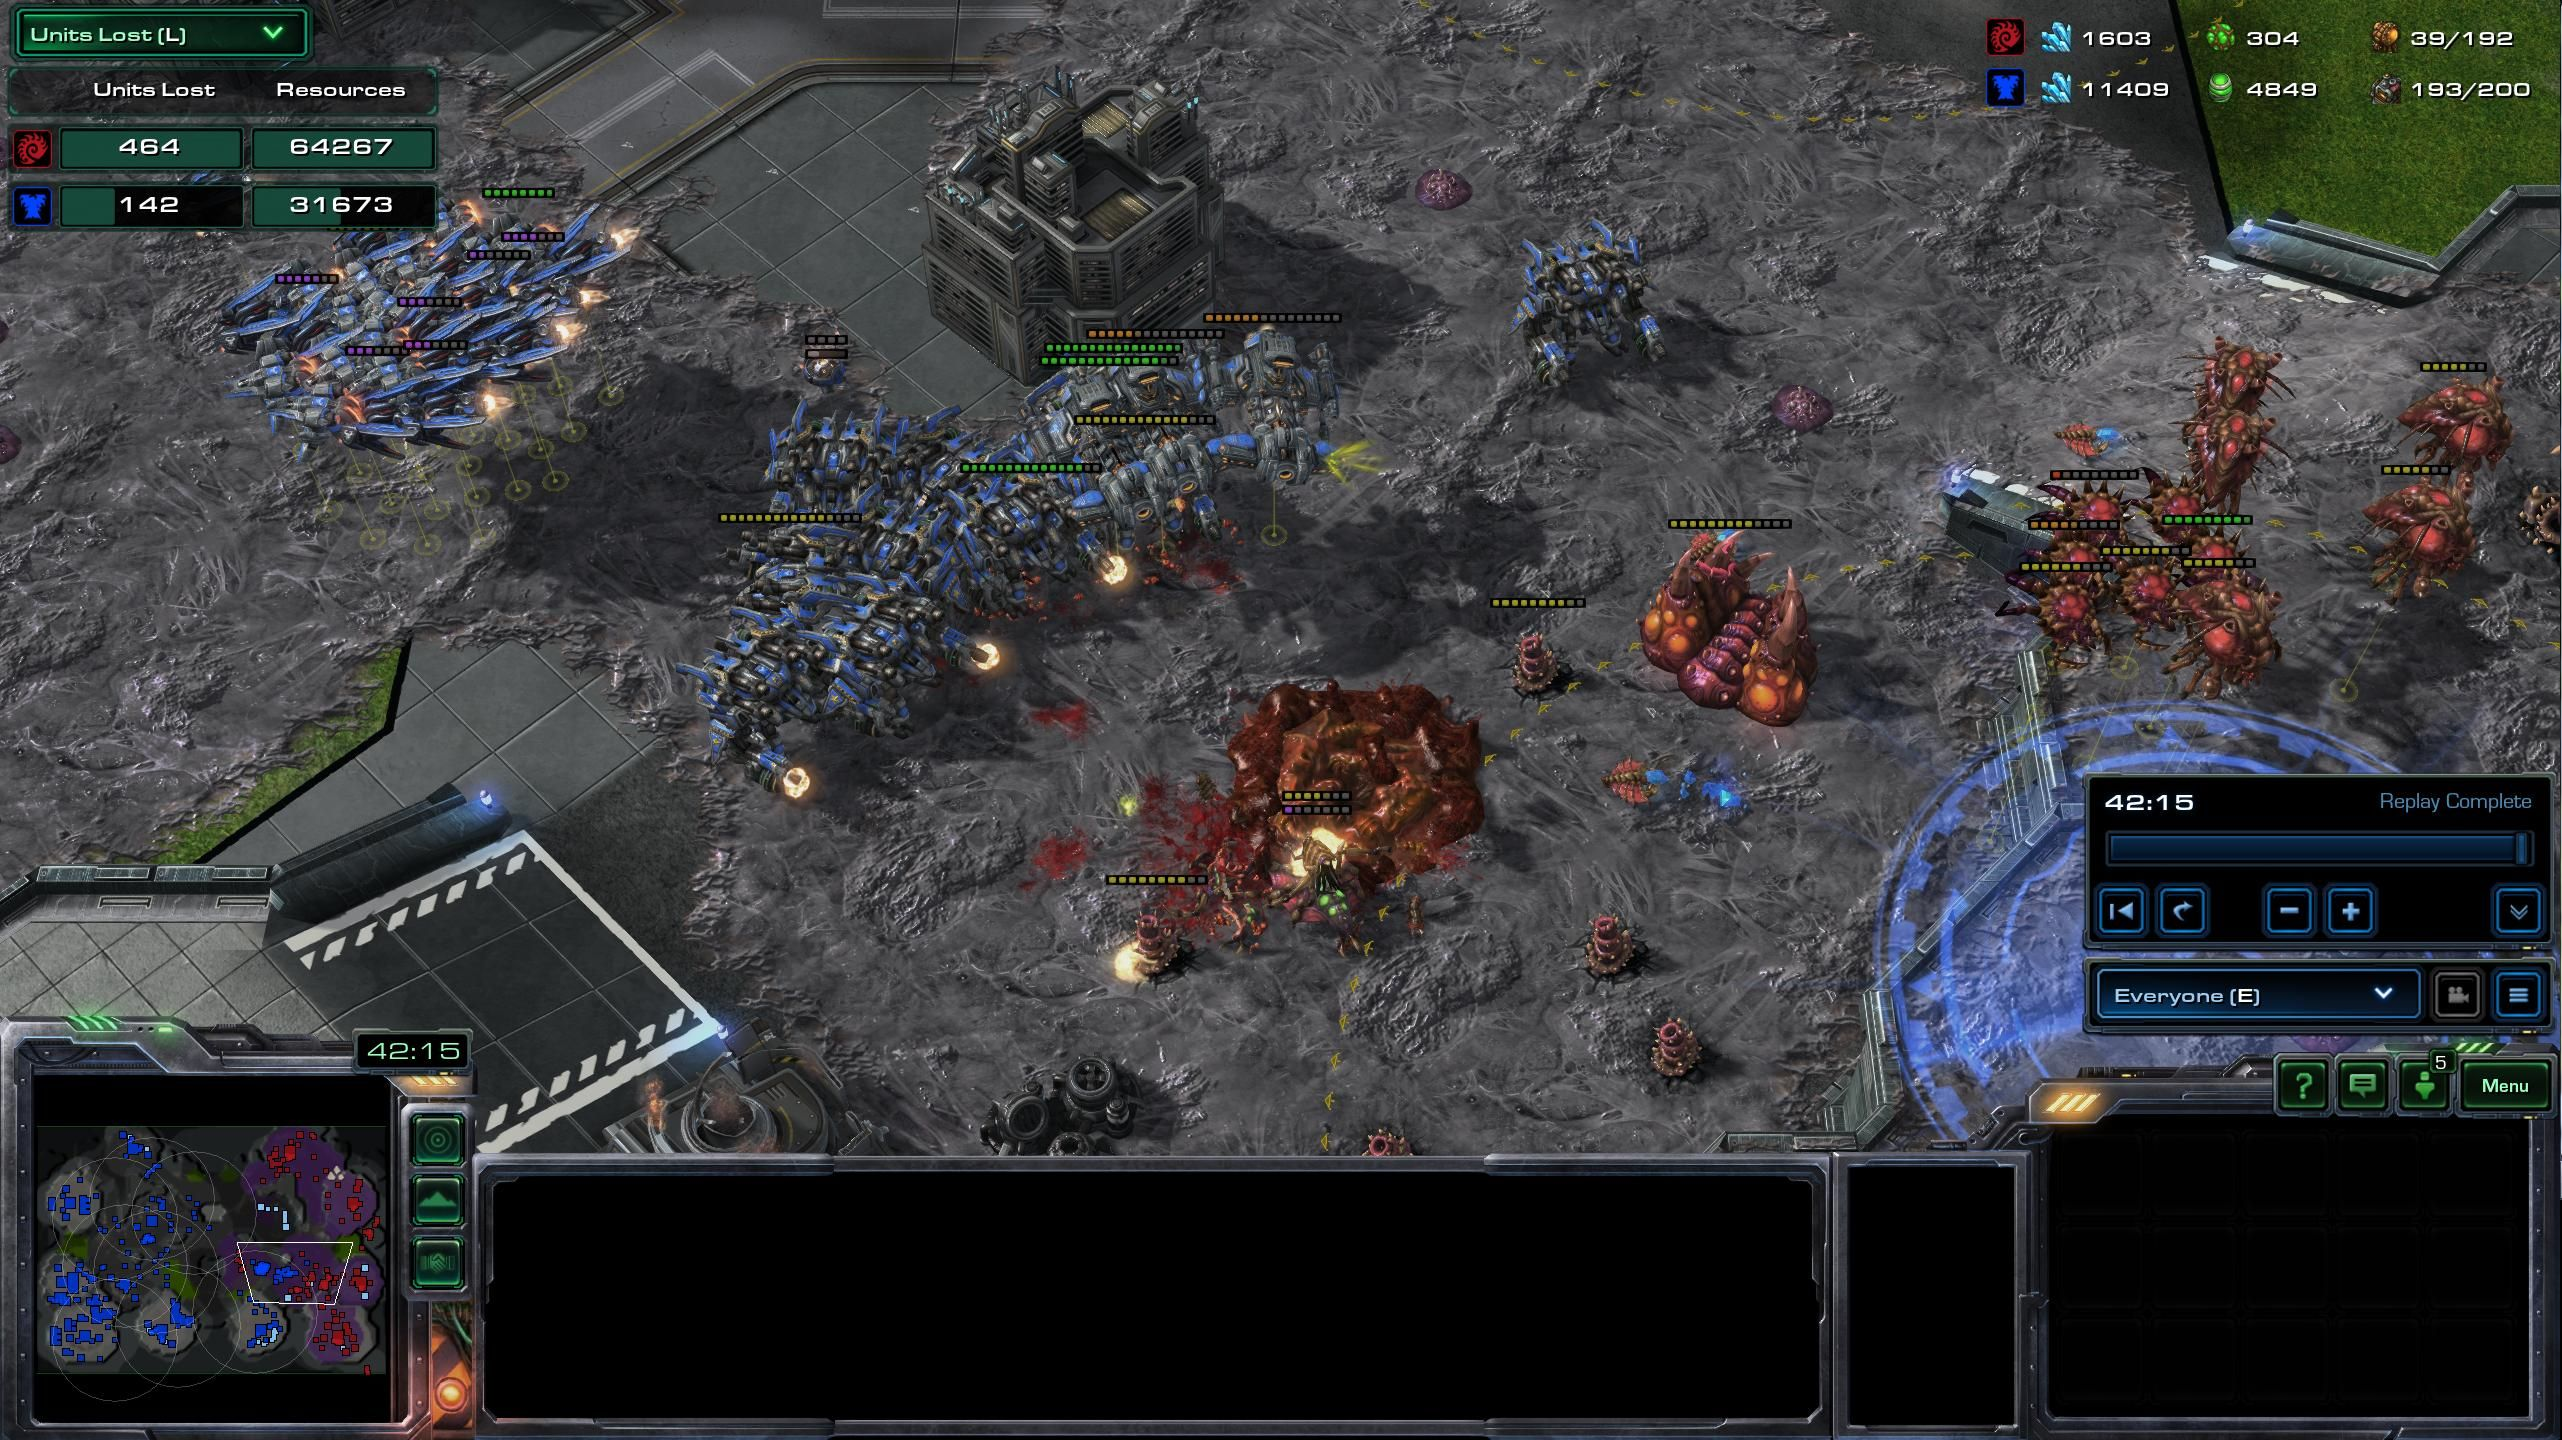 I know this will get downvotes but for the 2 people that might be interested this is how you mech vs Vipers and win #games #Starcraft #Starcraft2 #SC2 #gamingnews #blizzard